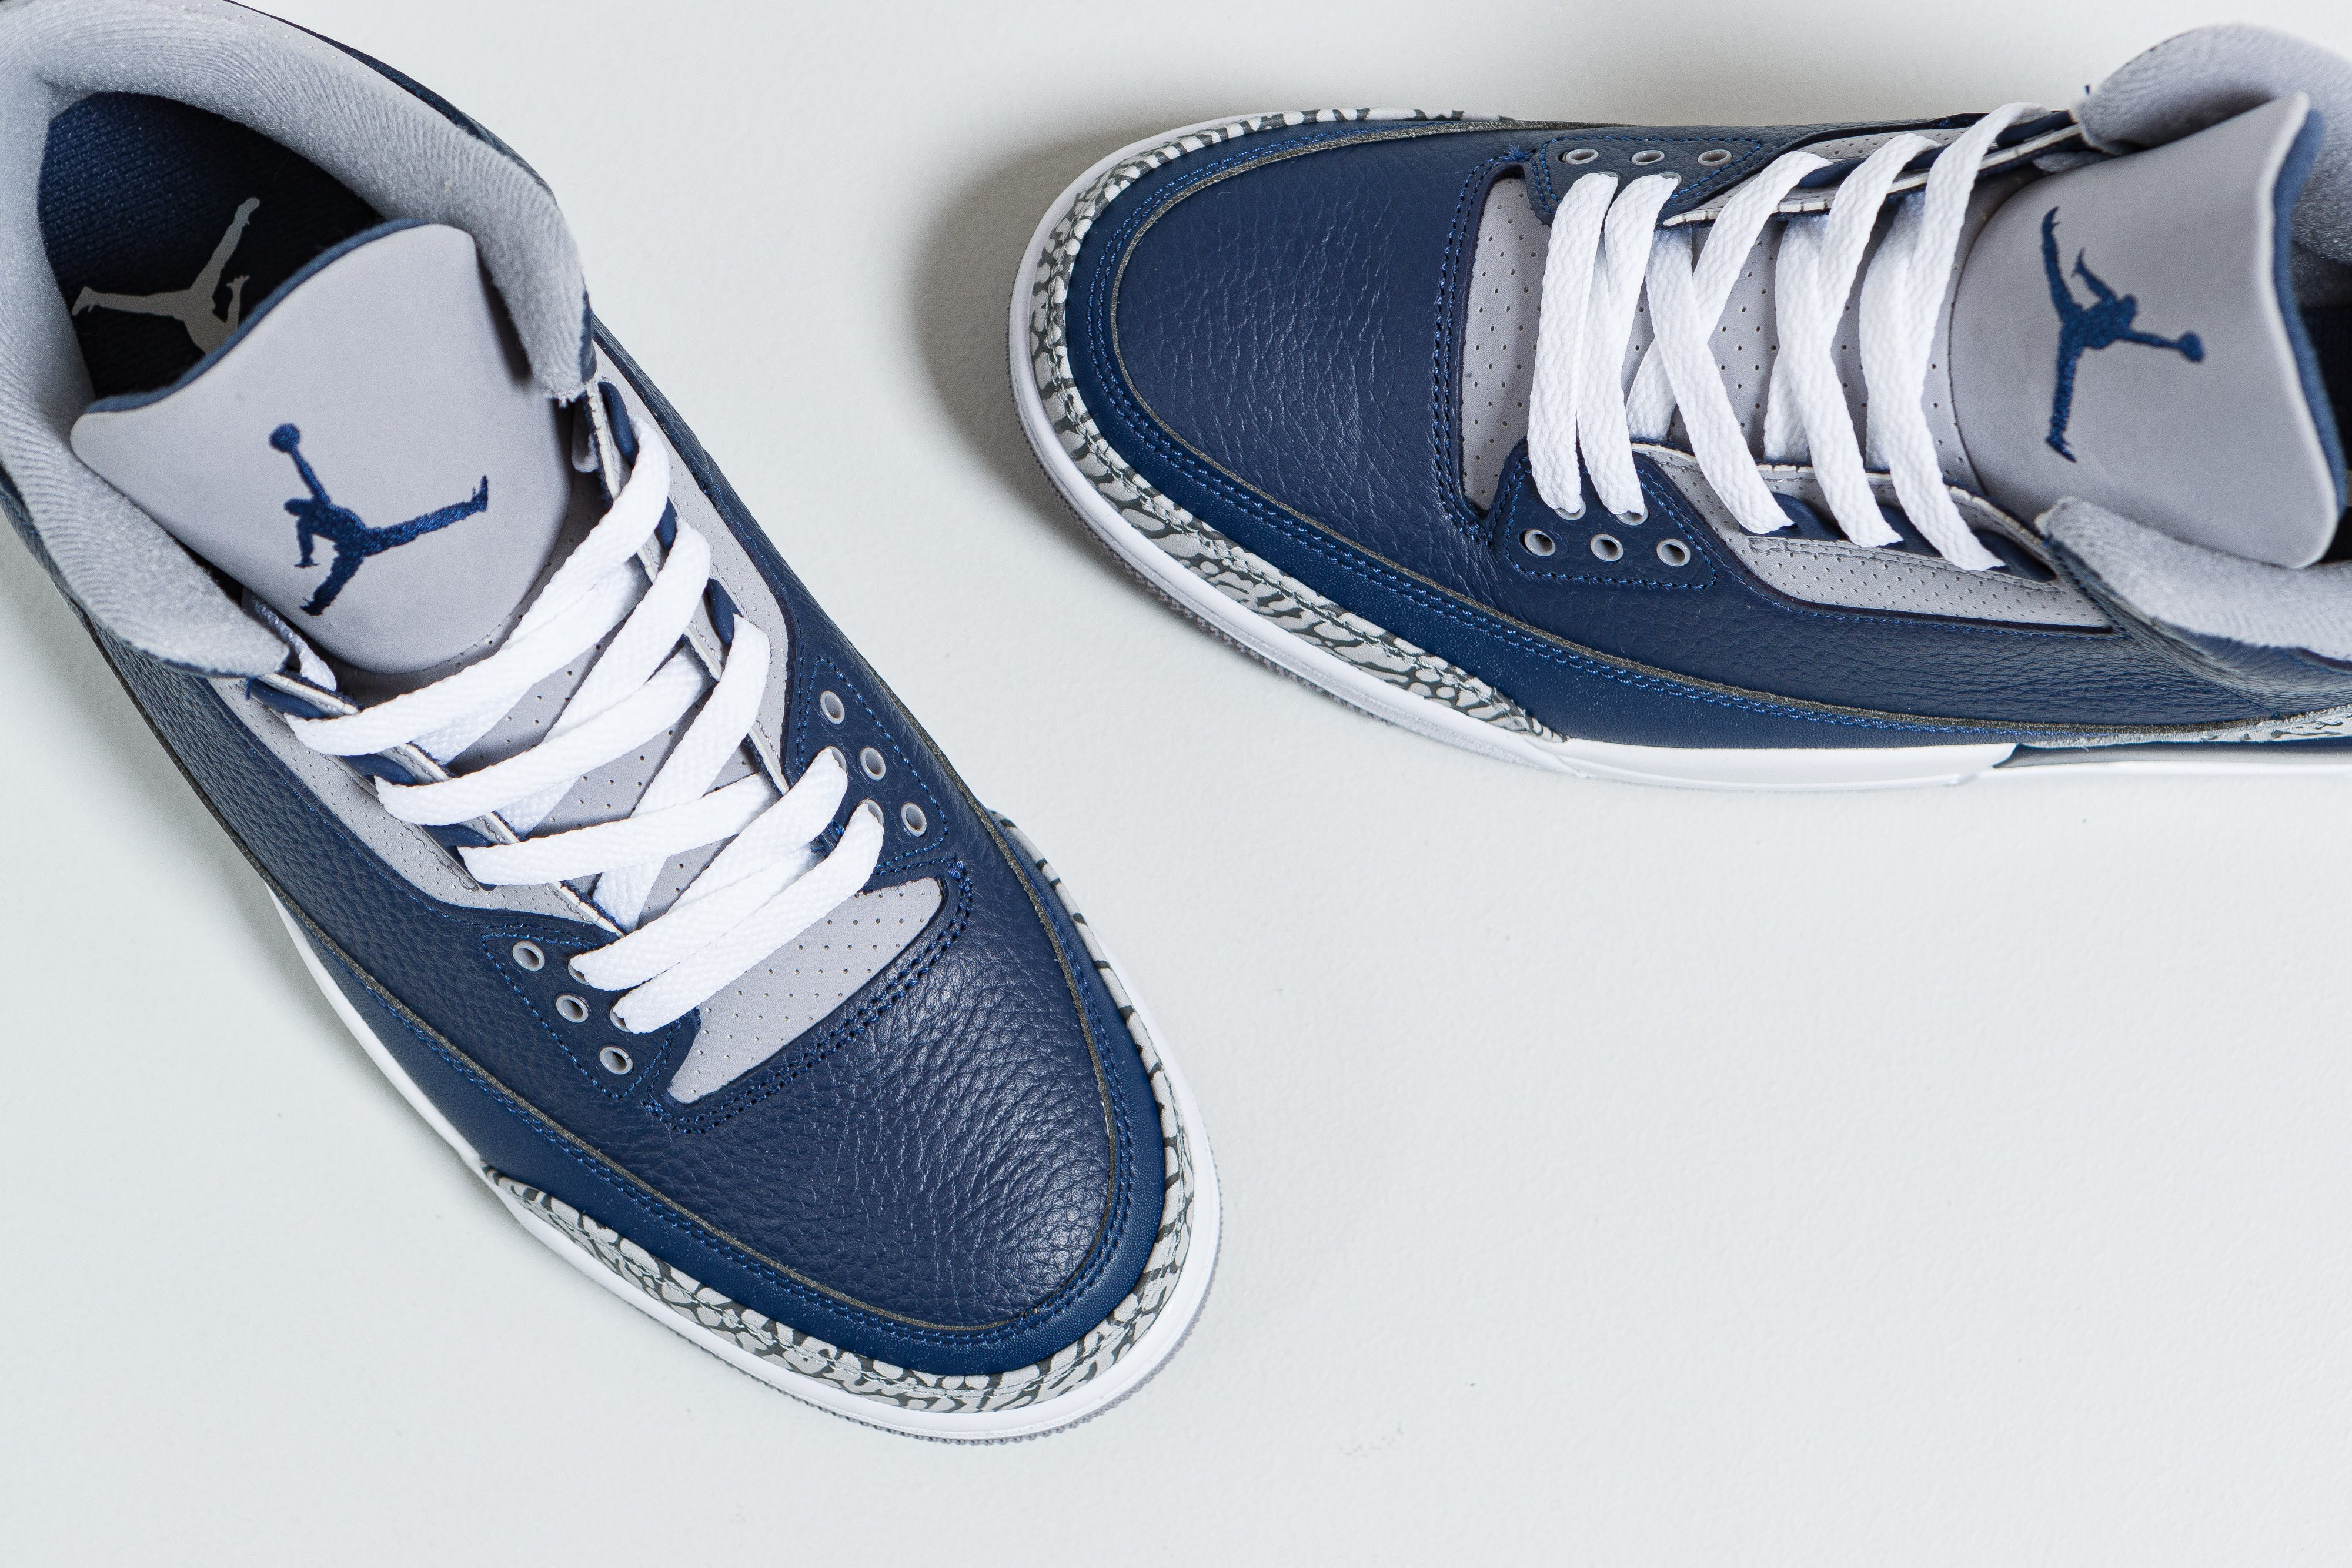 Up There Launches - Nike Air Jordan 3 Retro - Midnight Navy/White-Cement Grey